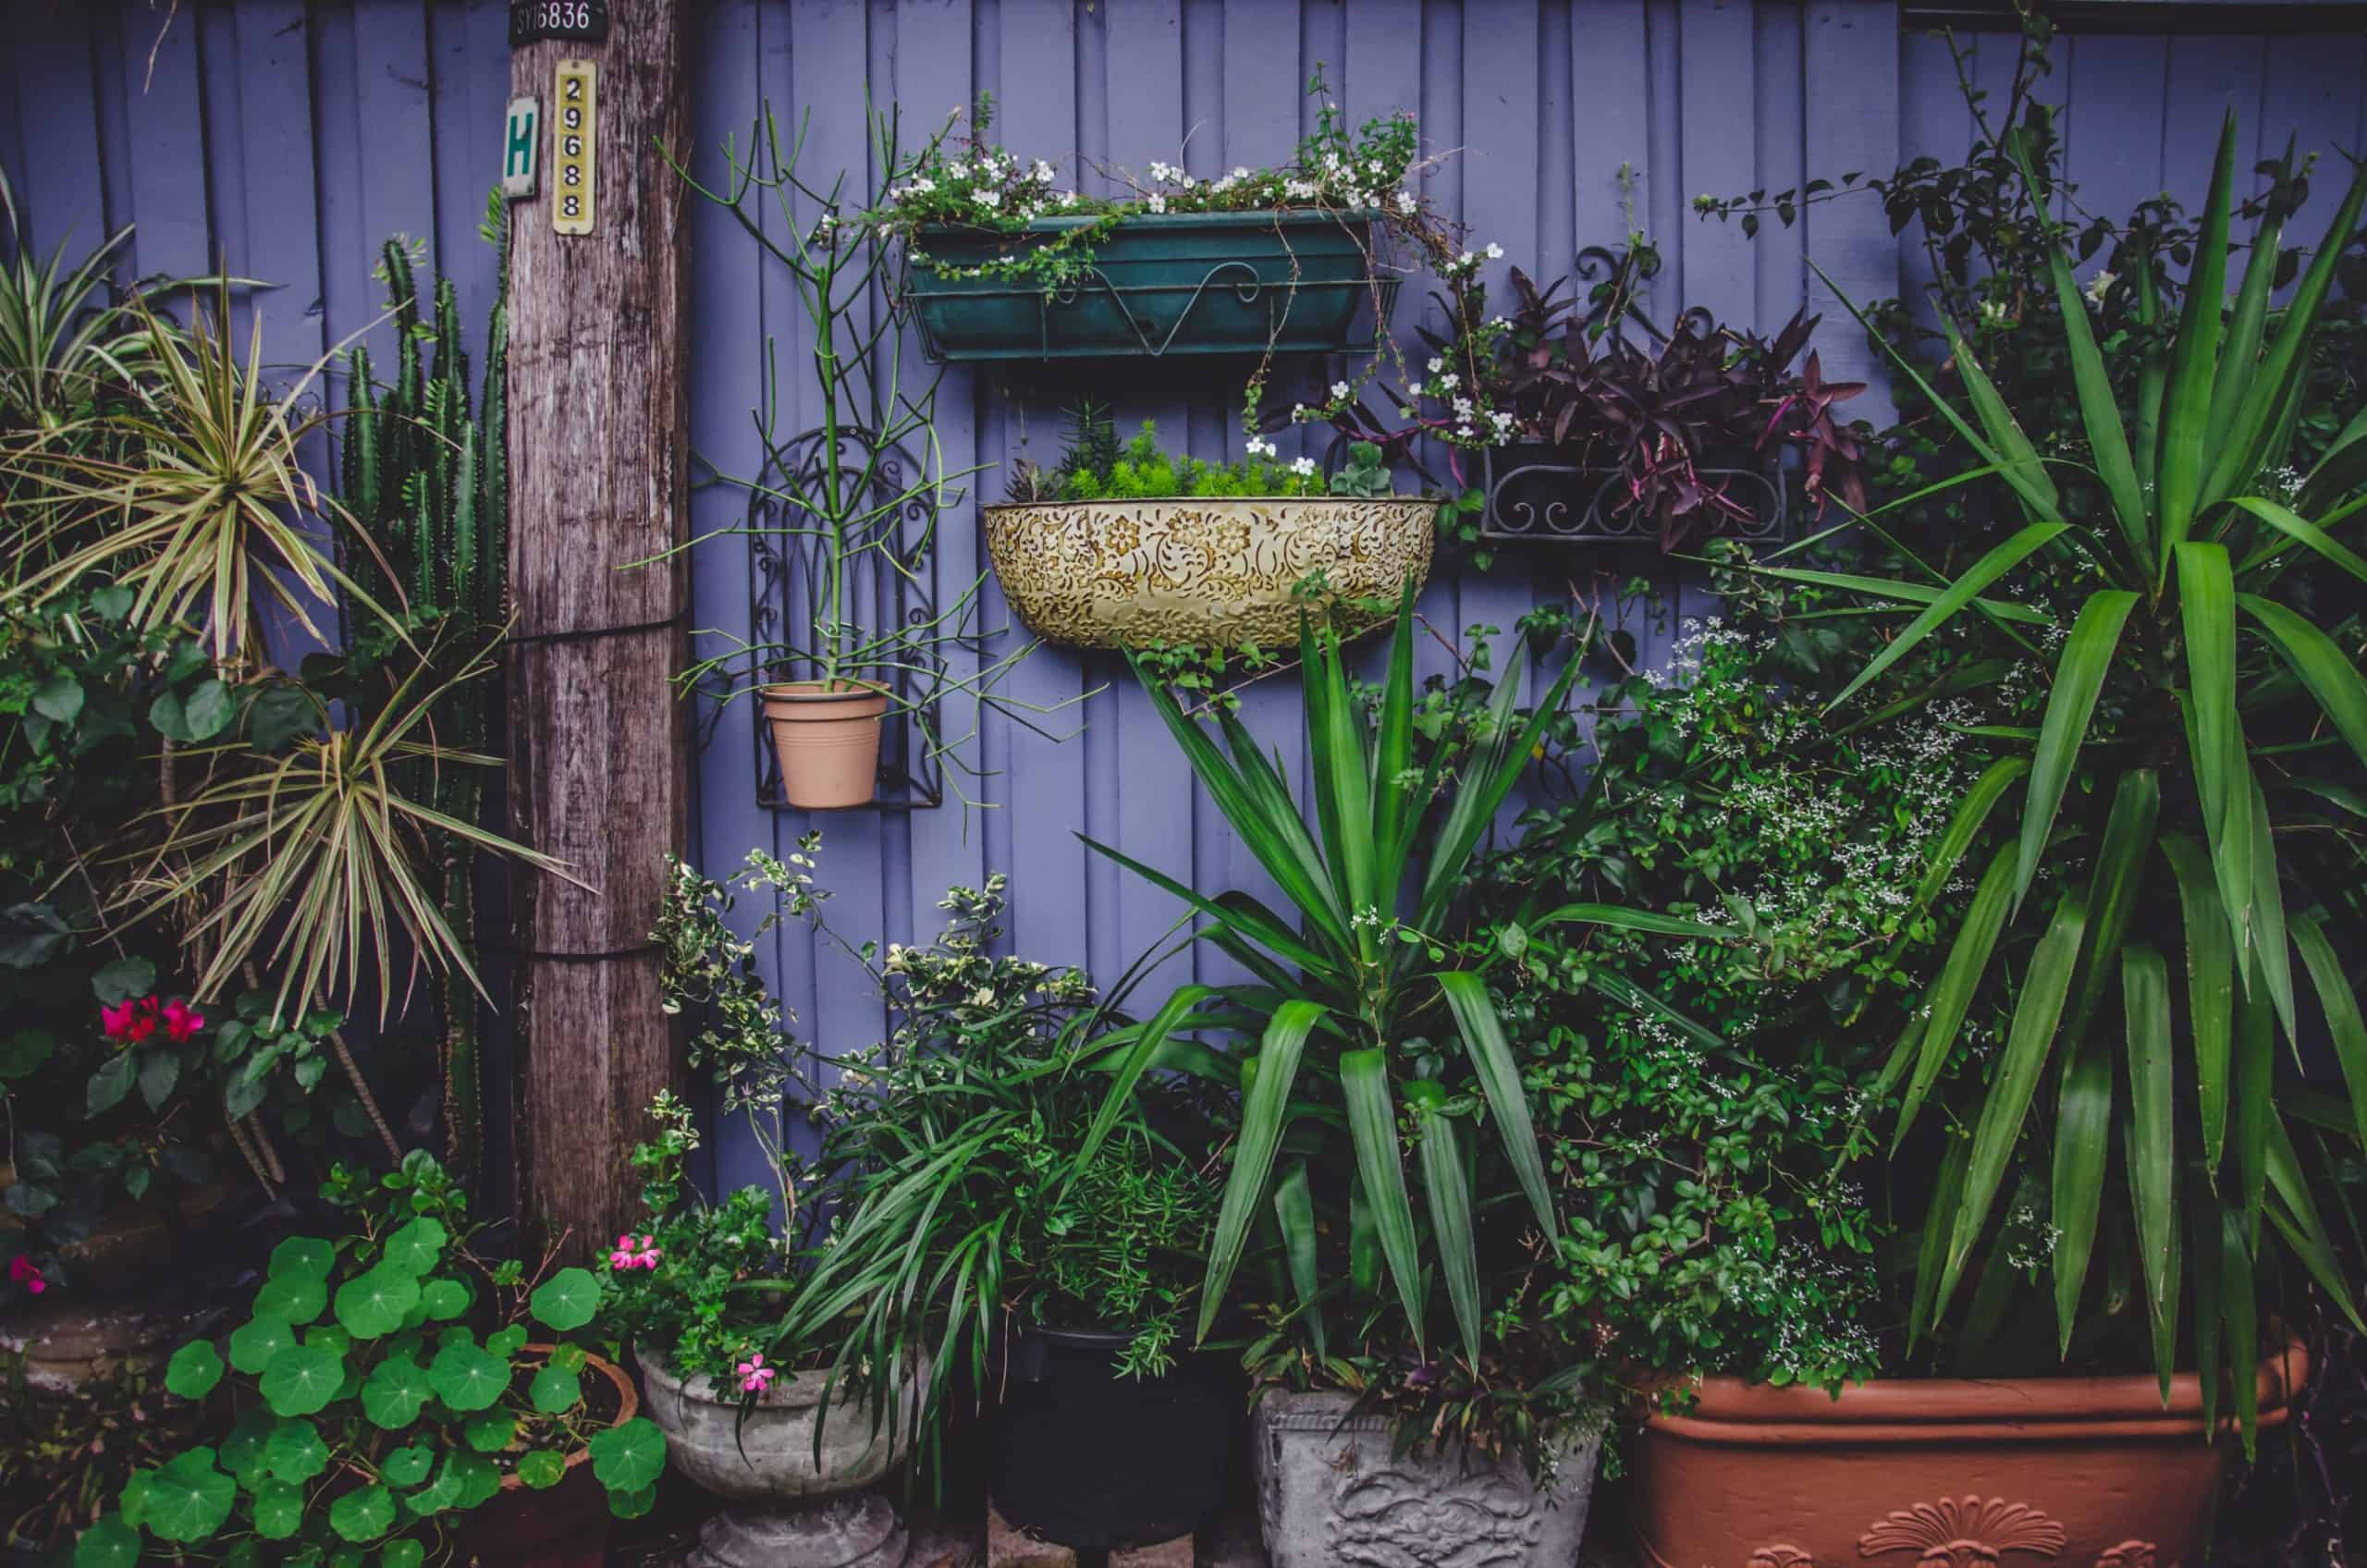 Useful Tools To Have A Clean Air In Your Garden